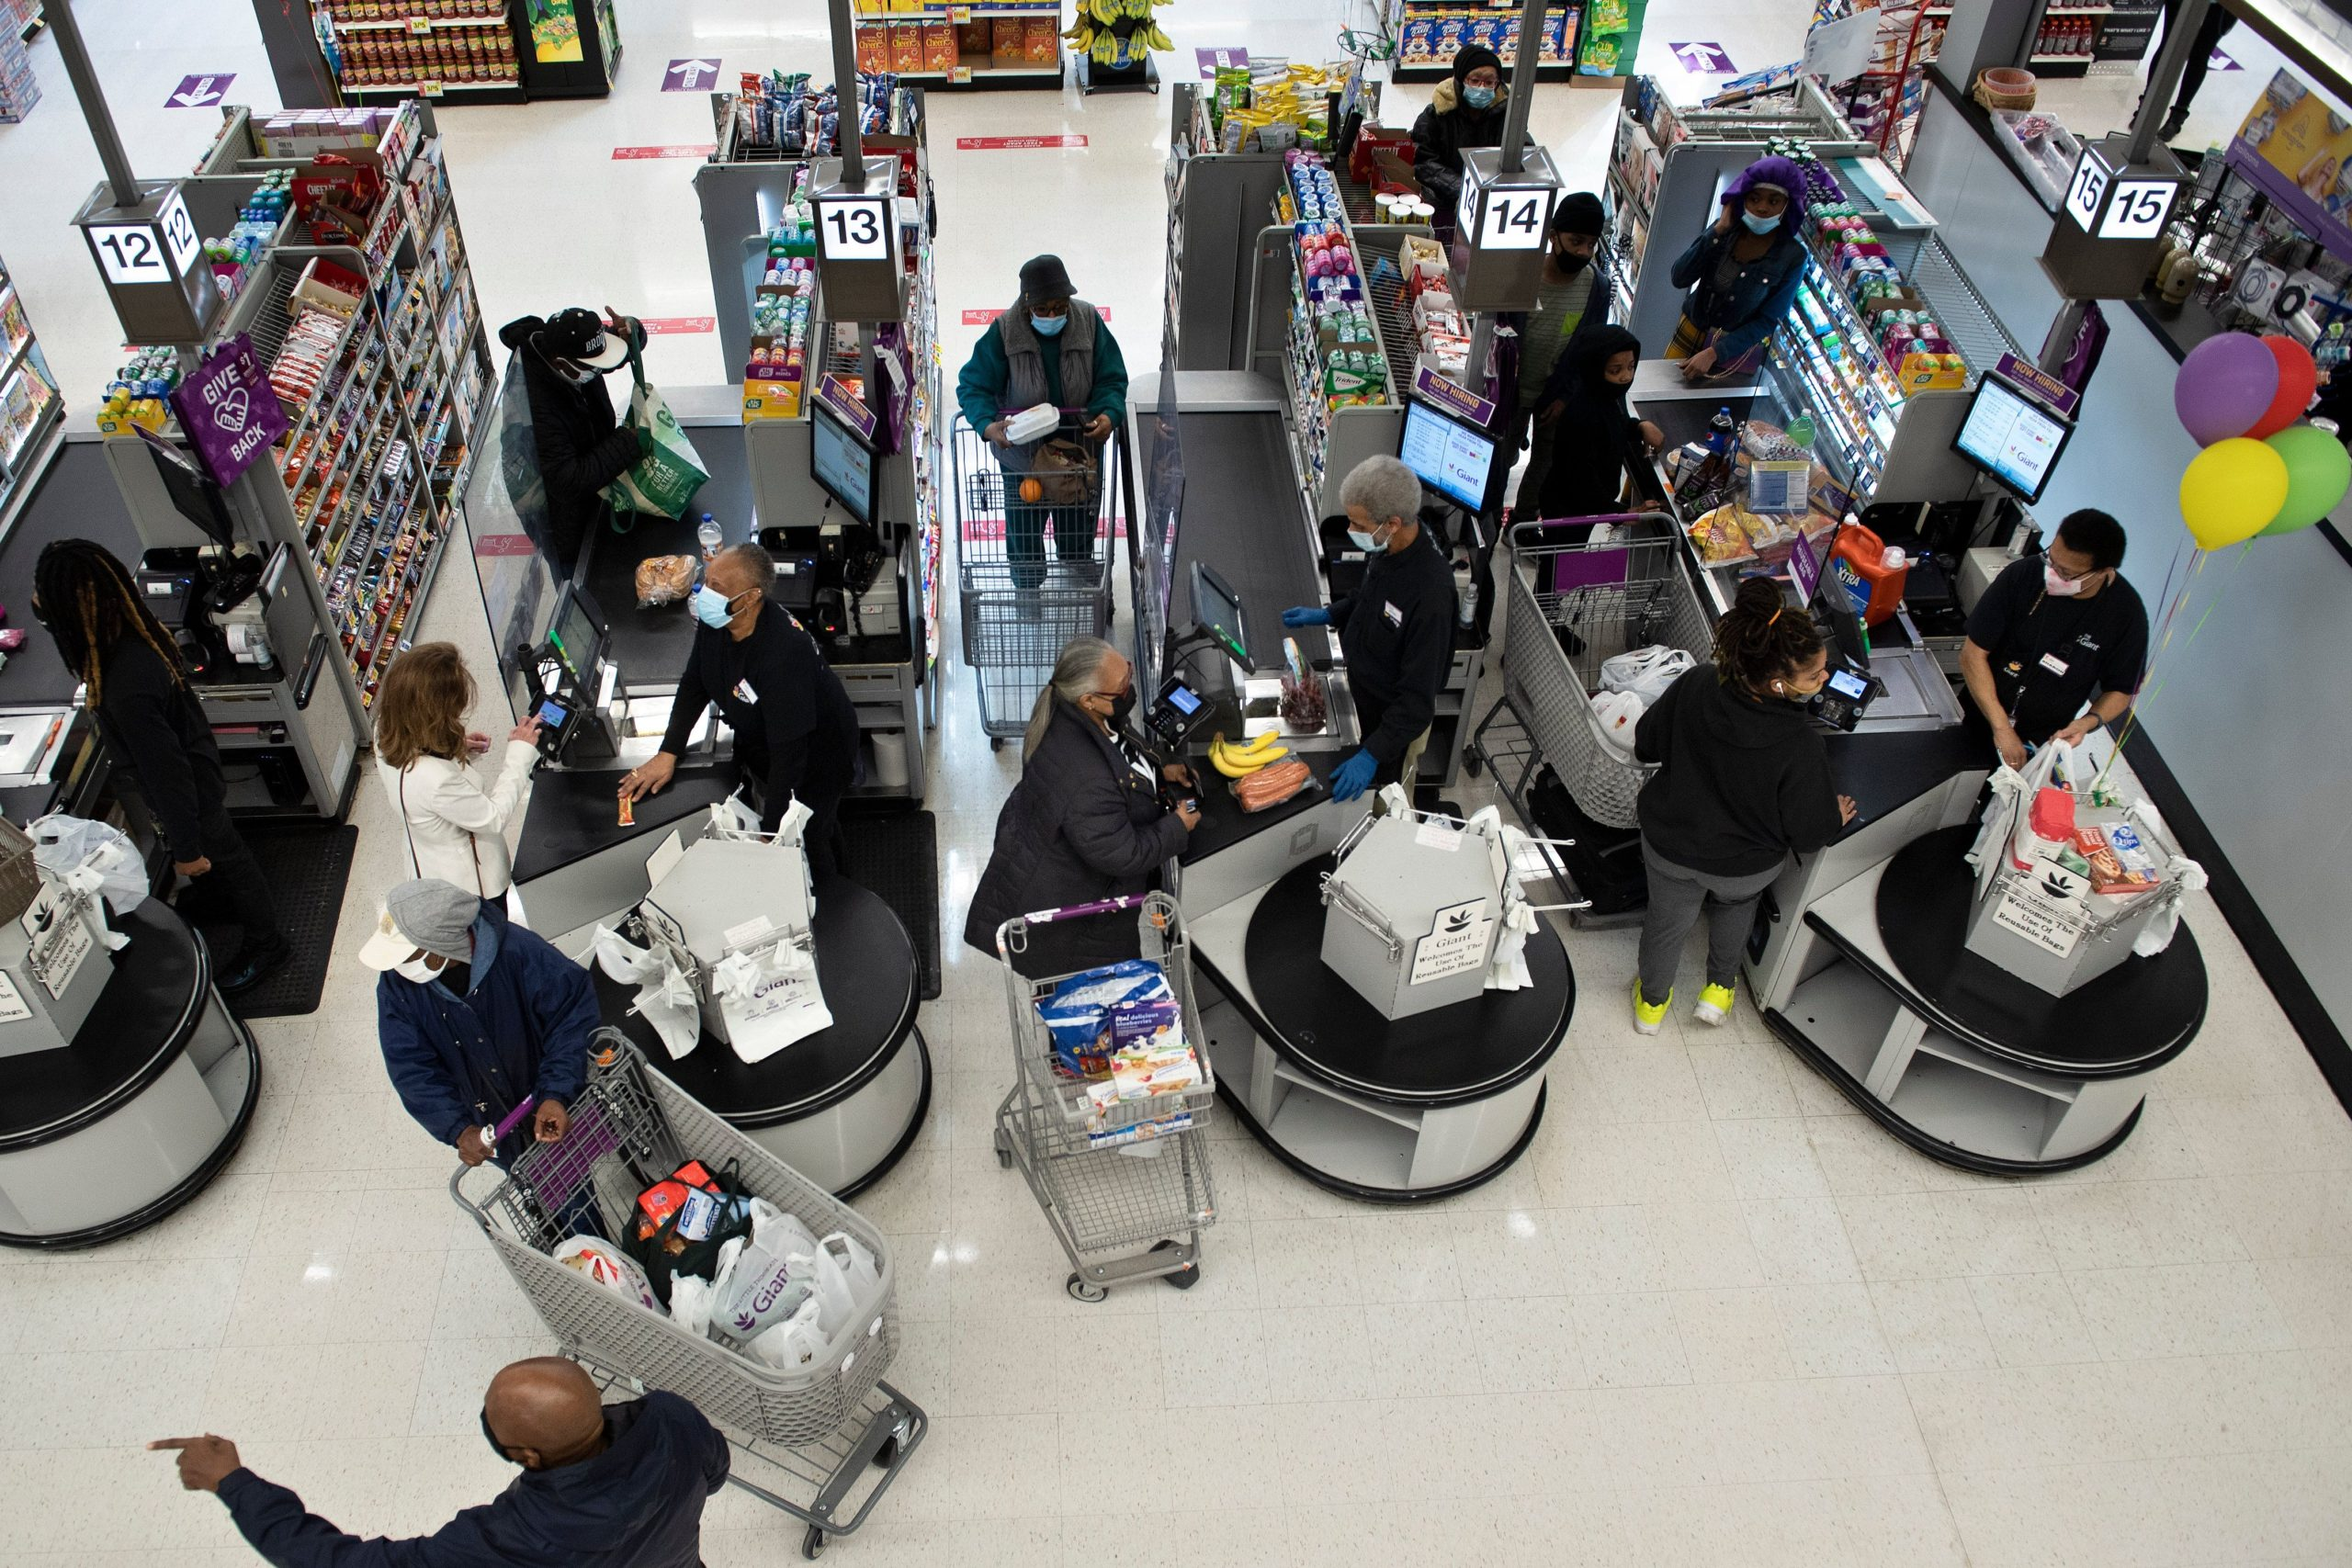 People shop at a grocery store in February in Washington, D.C. (Brendan Smialowski/AFP via Getty Images)